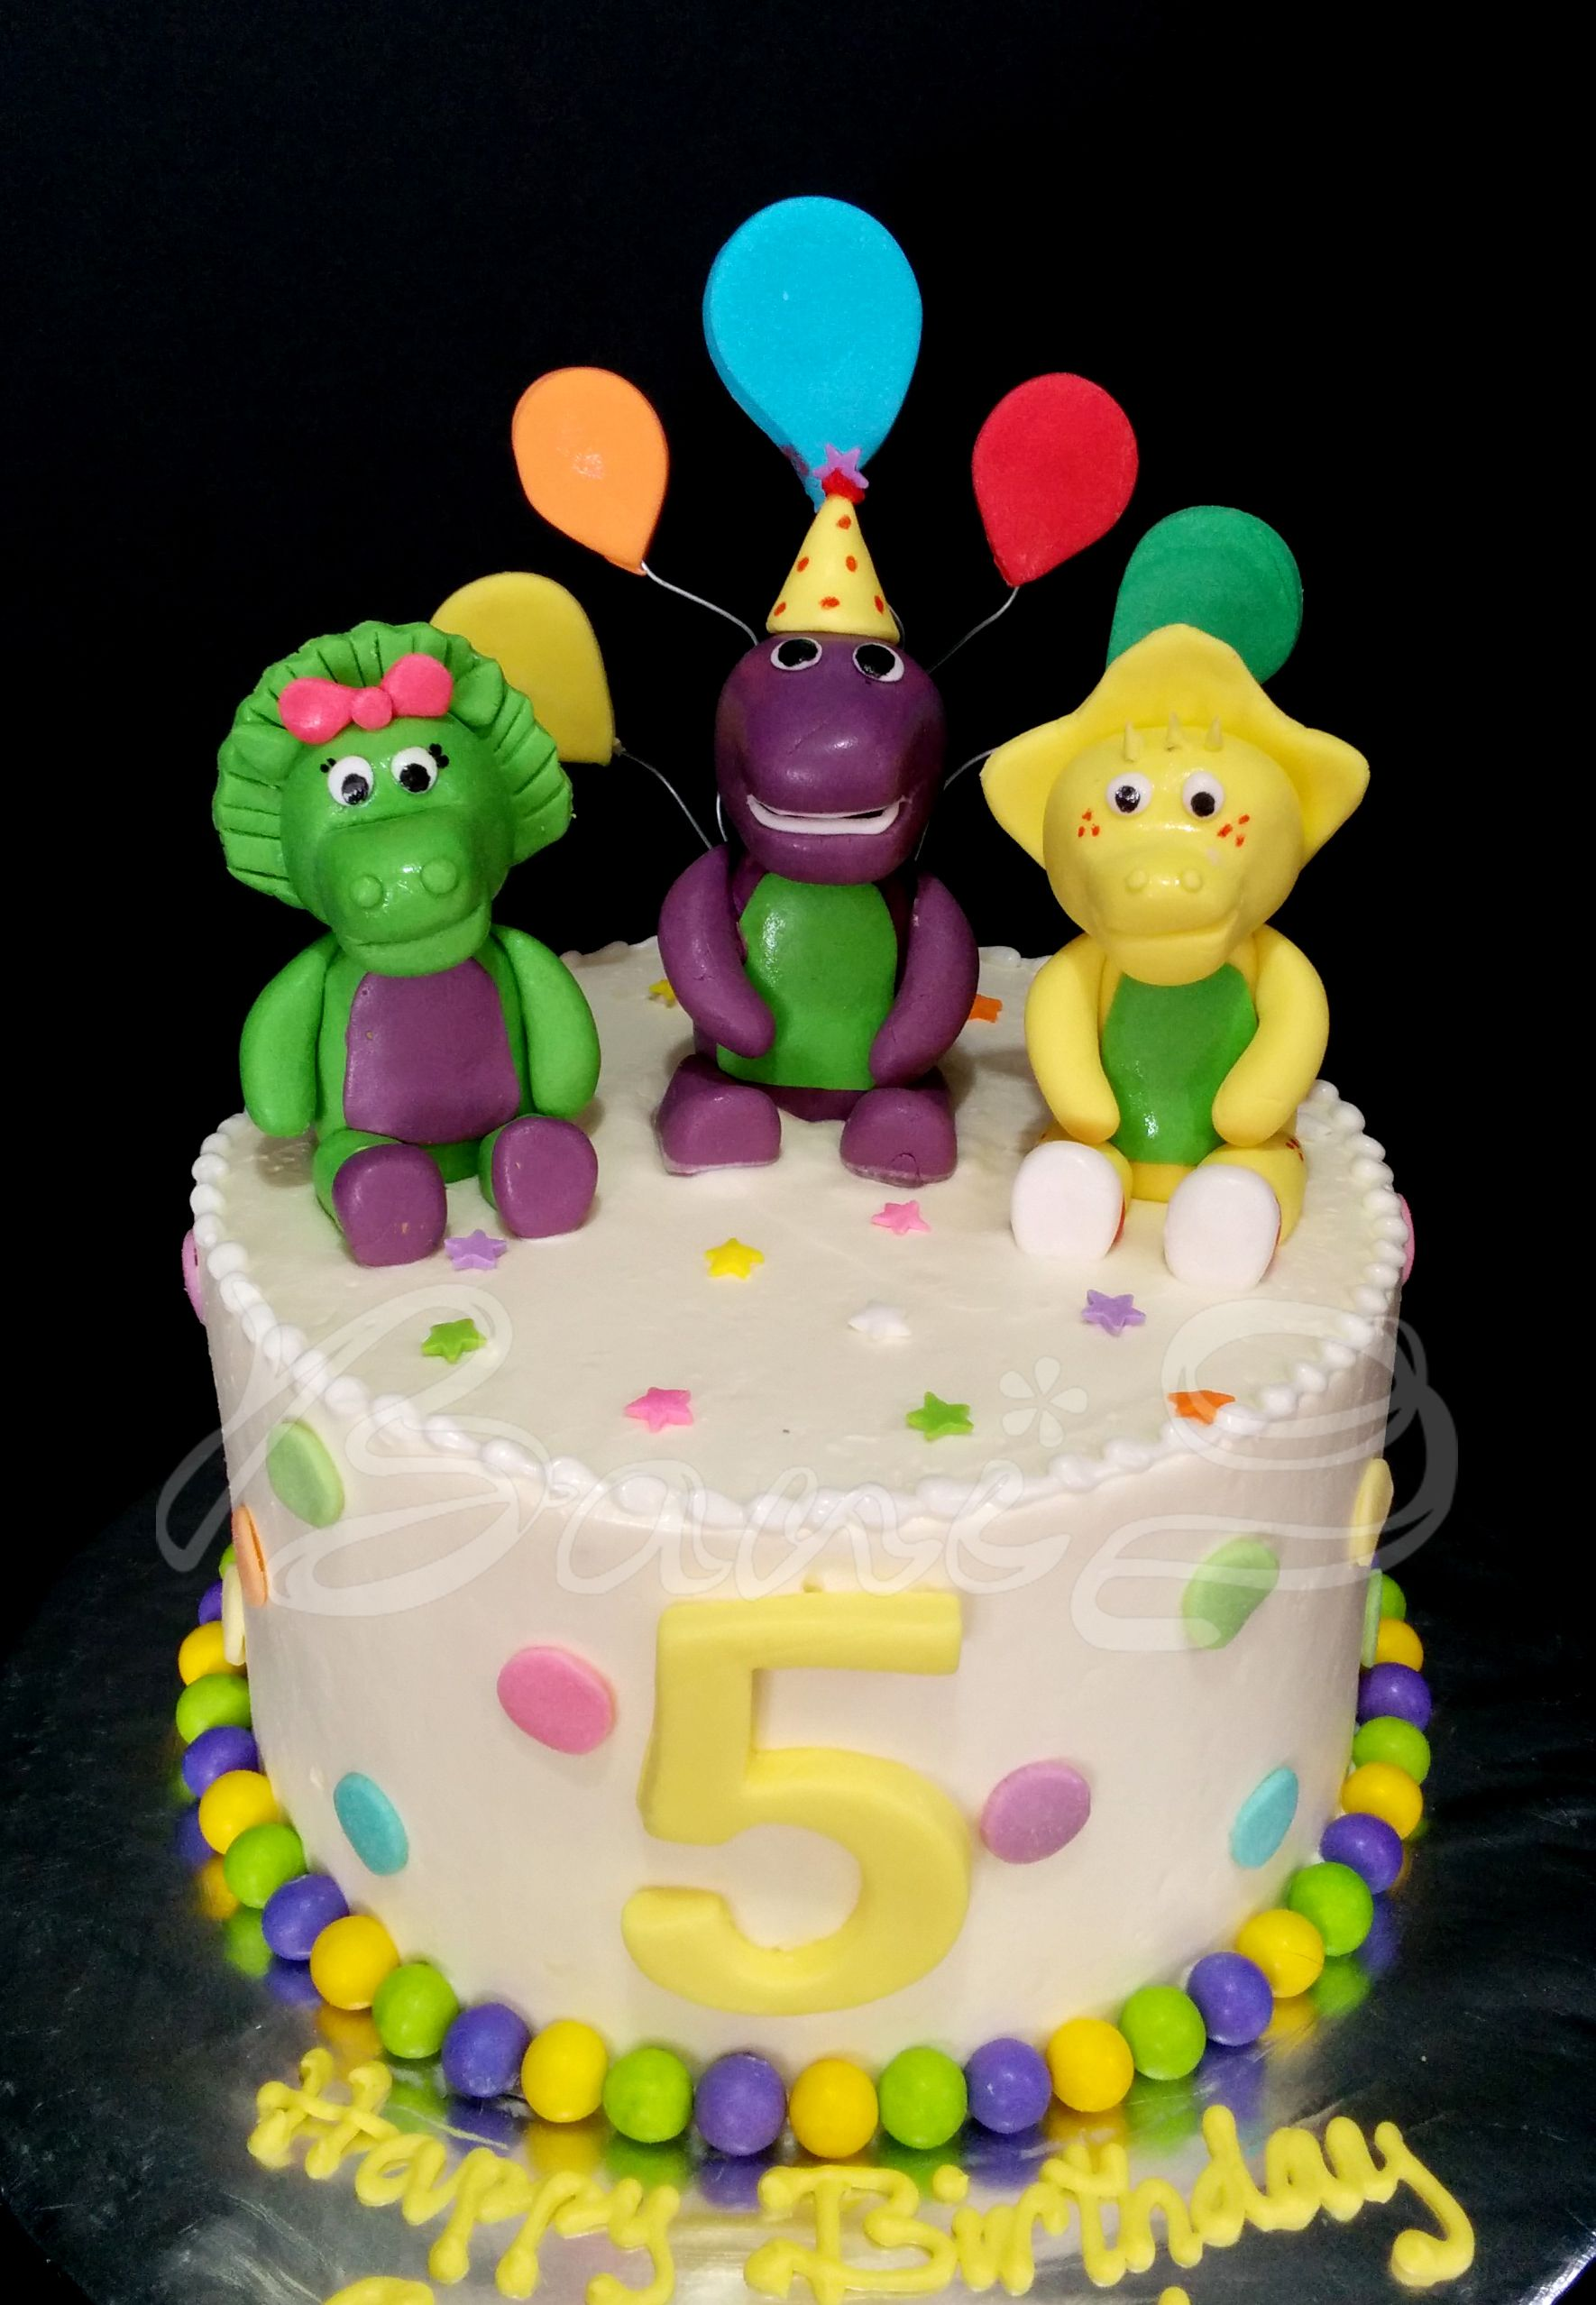 barney and friend cake cake for boy Barney birthday party